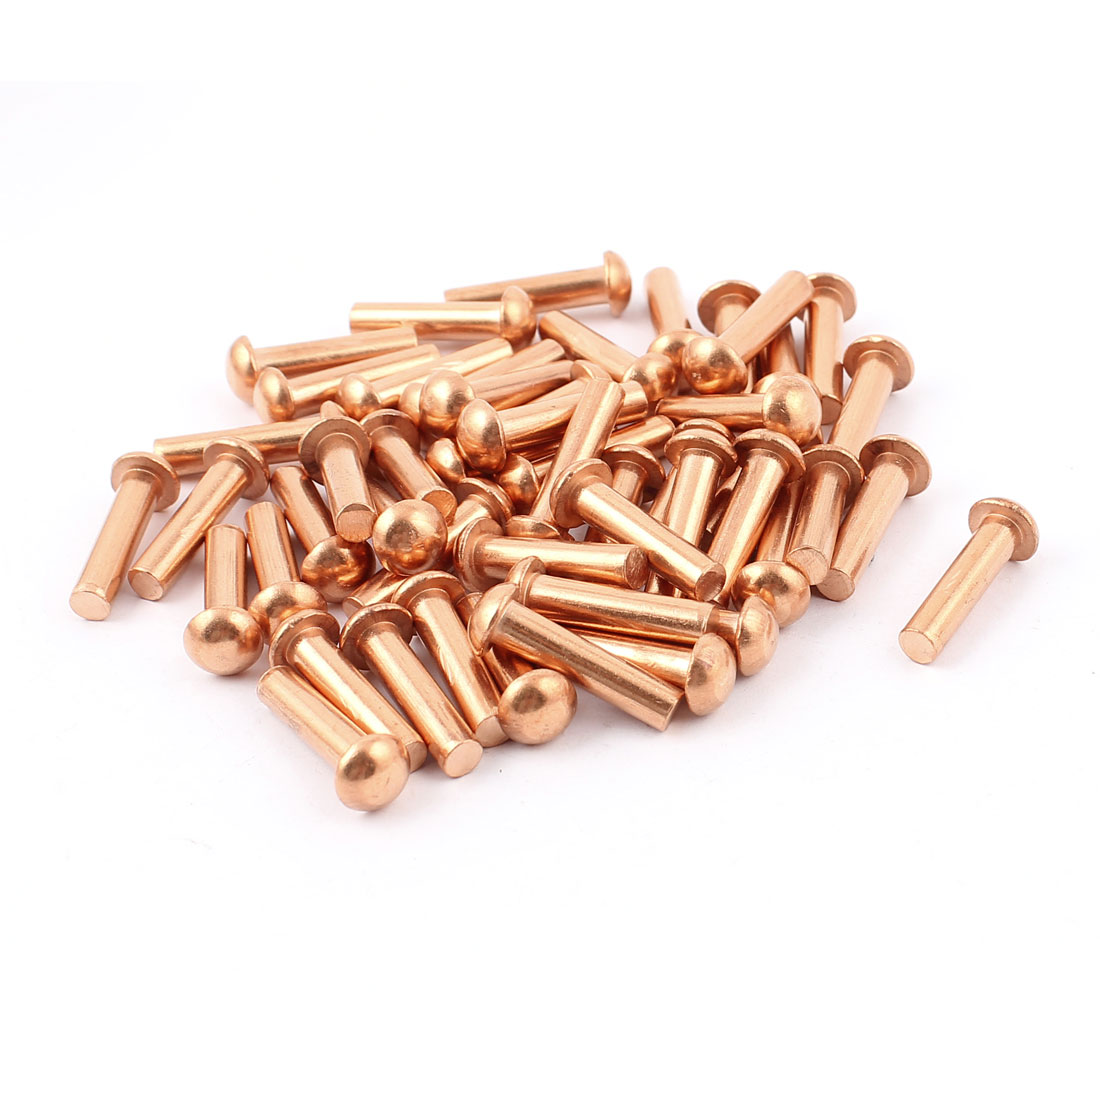 "50 Pcs 3/16"" Diameter 25/32"" L Shank Round Head Copper Solid Rivets Fasteners"